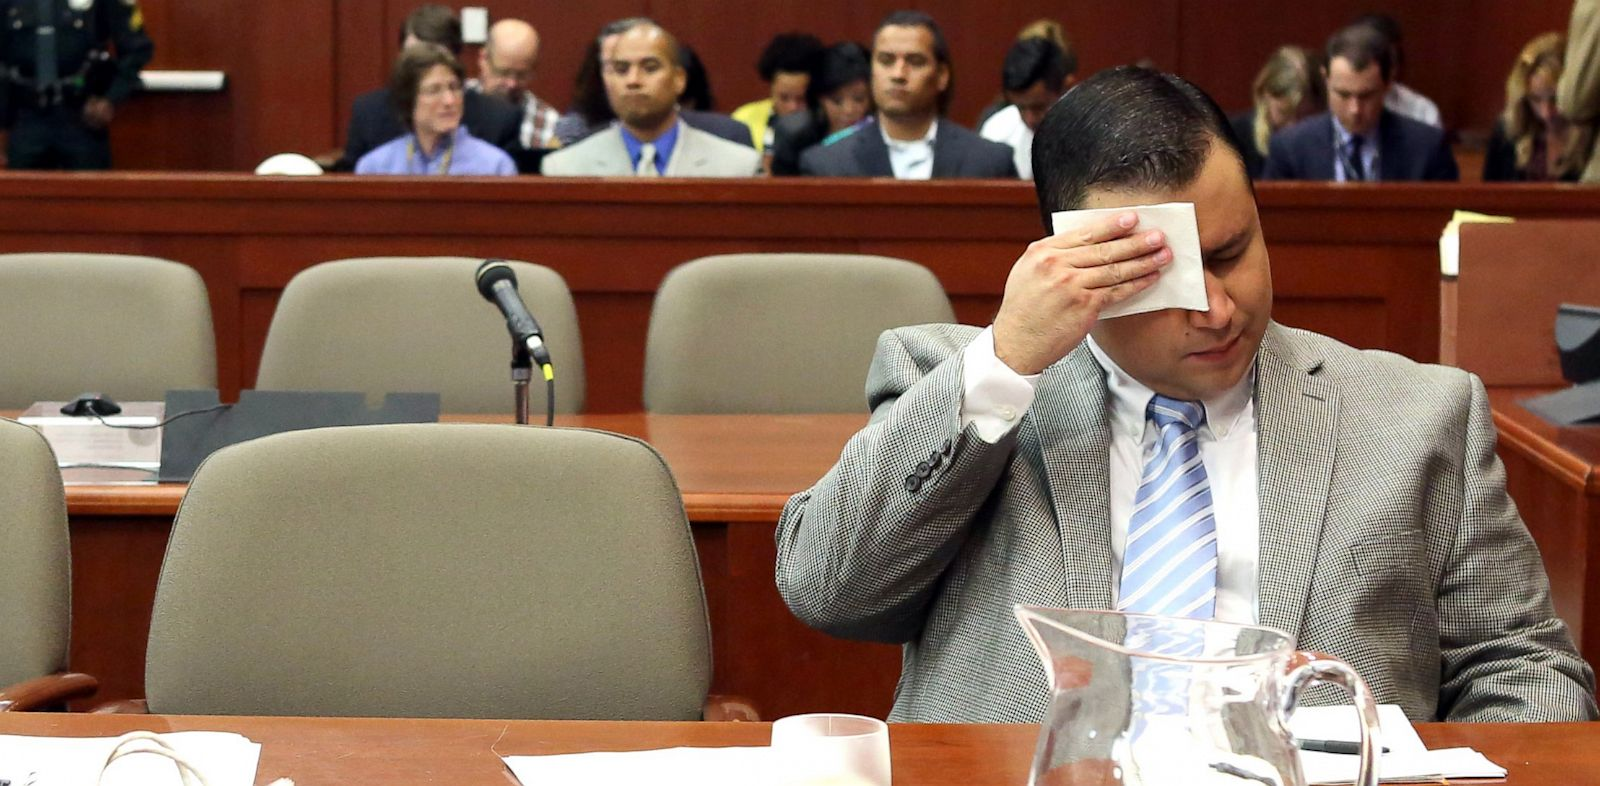 PHOTO: George Zimmerman wipes his brow